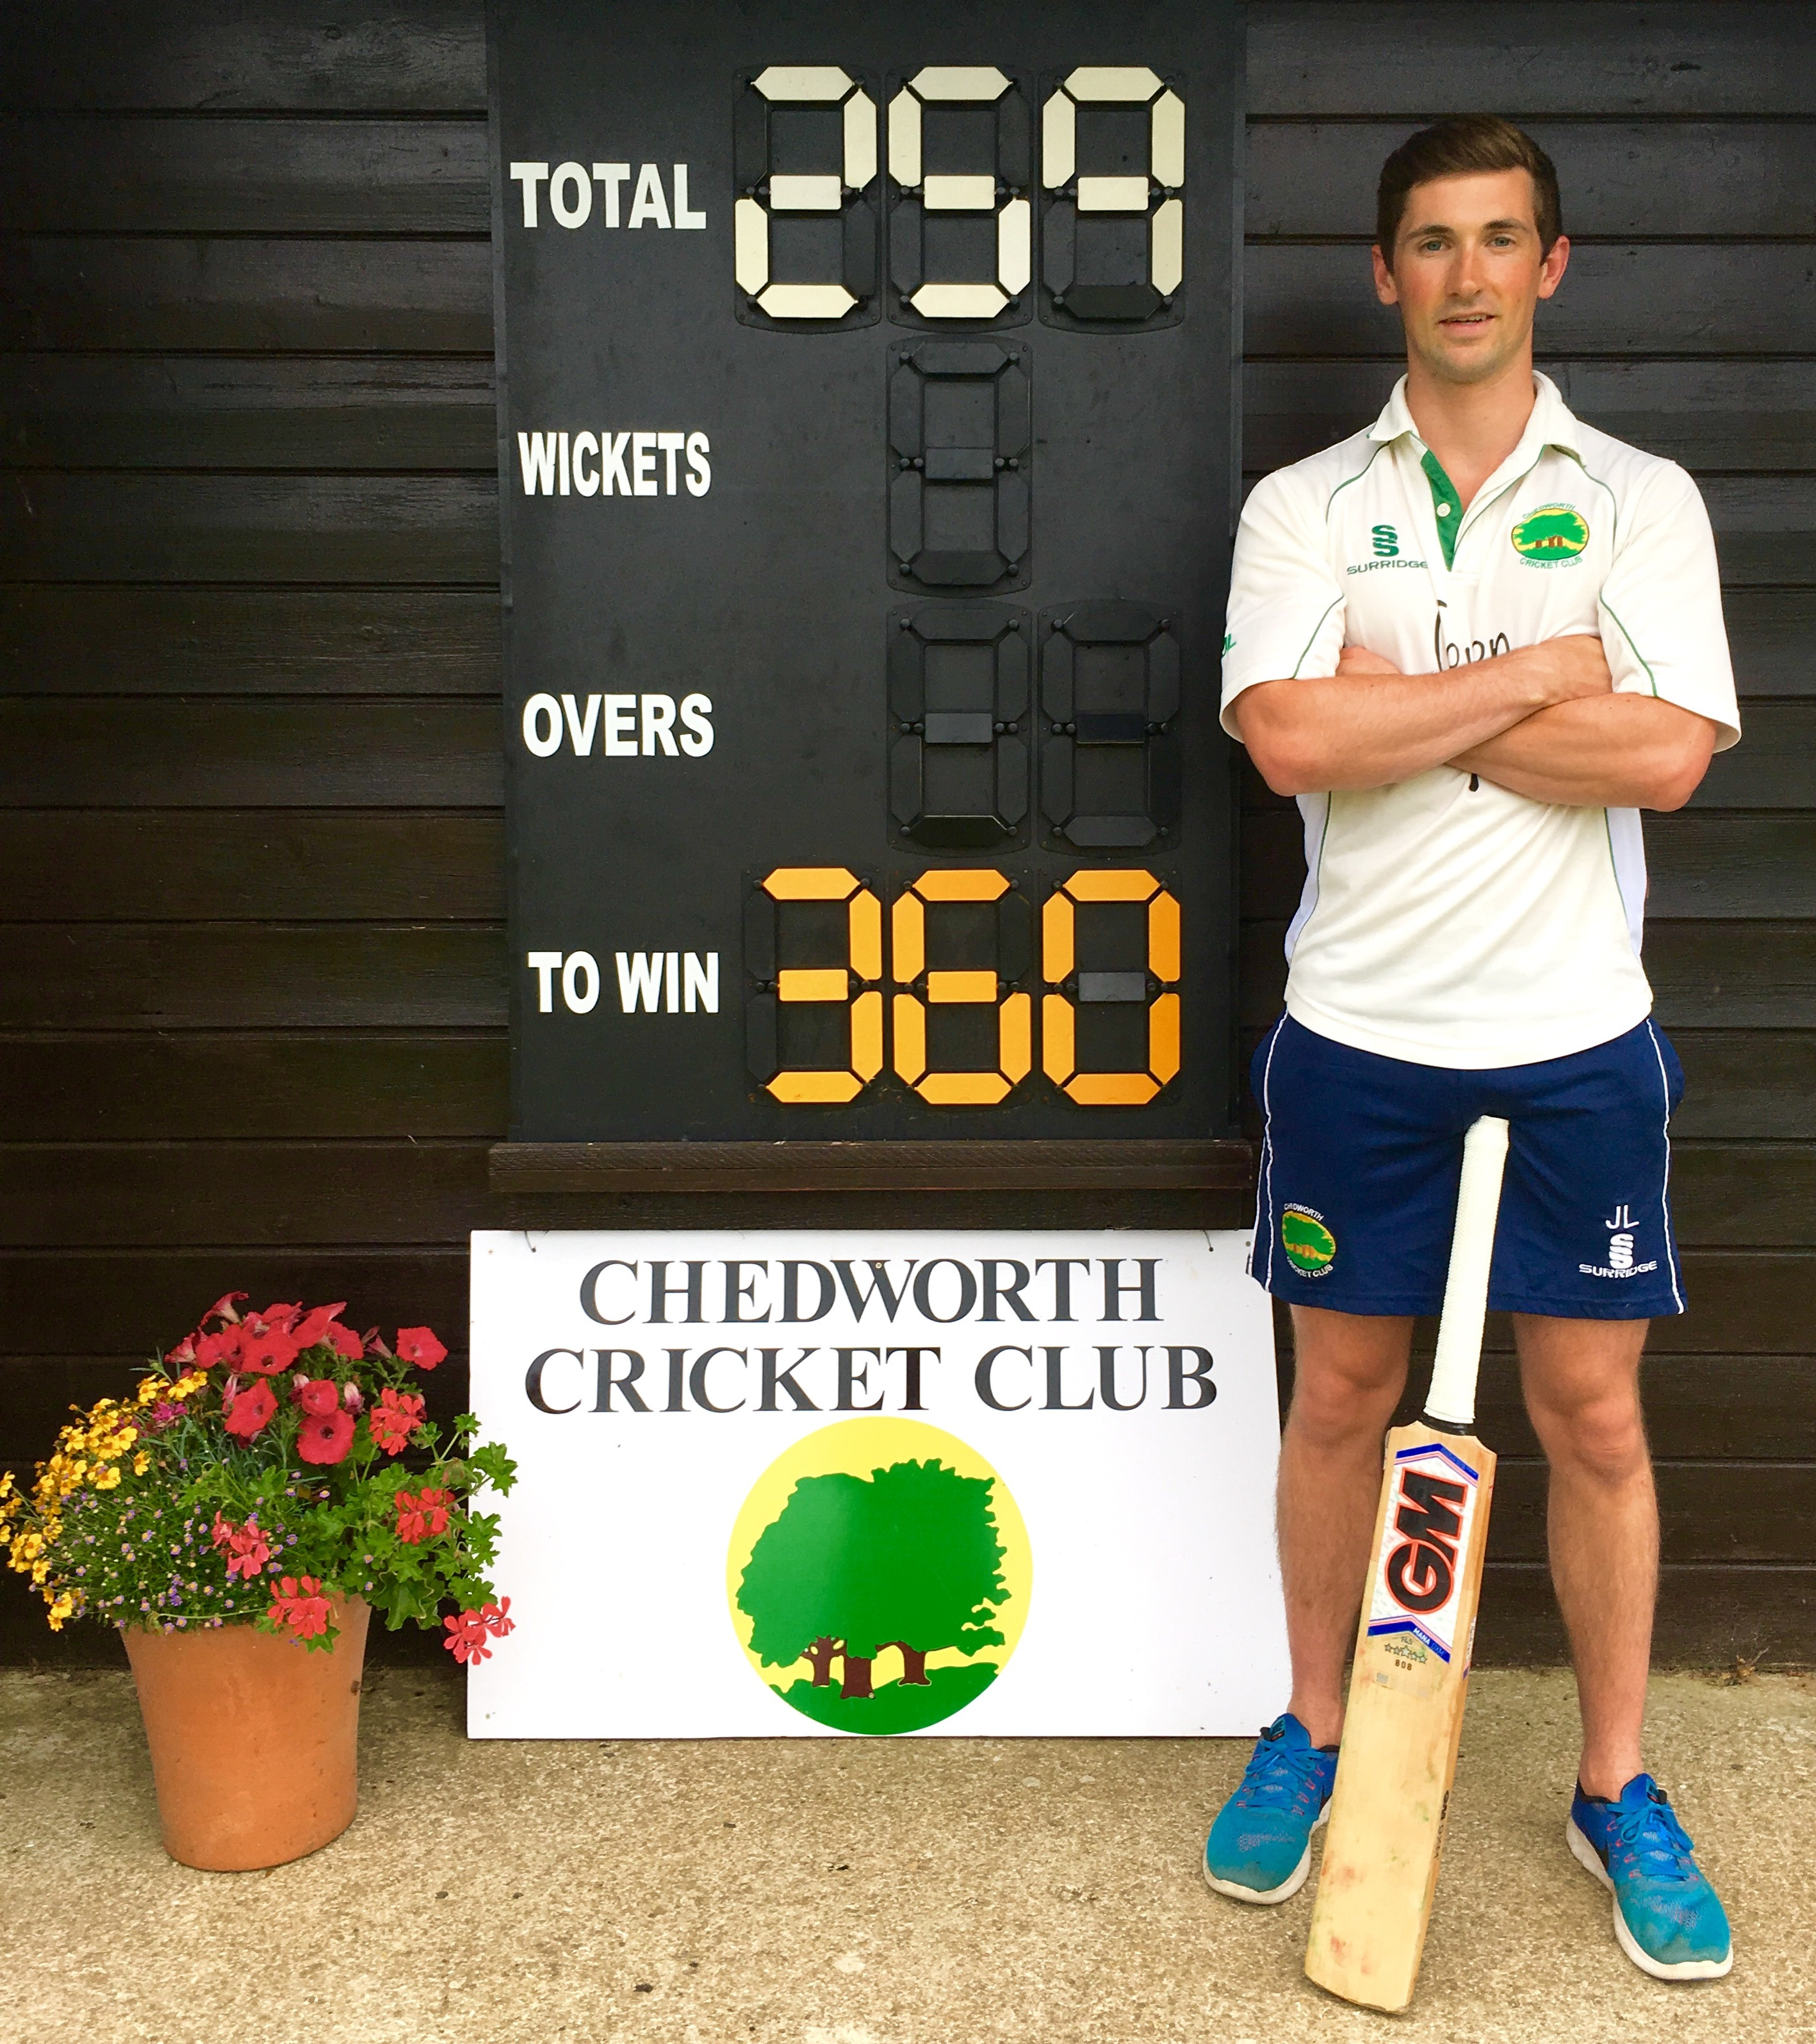 Jamie smashes 17 sixes in his record 259 not out for Chedworth